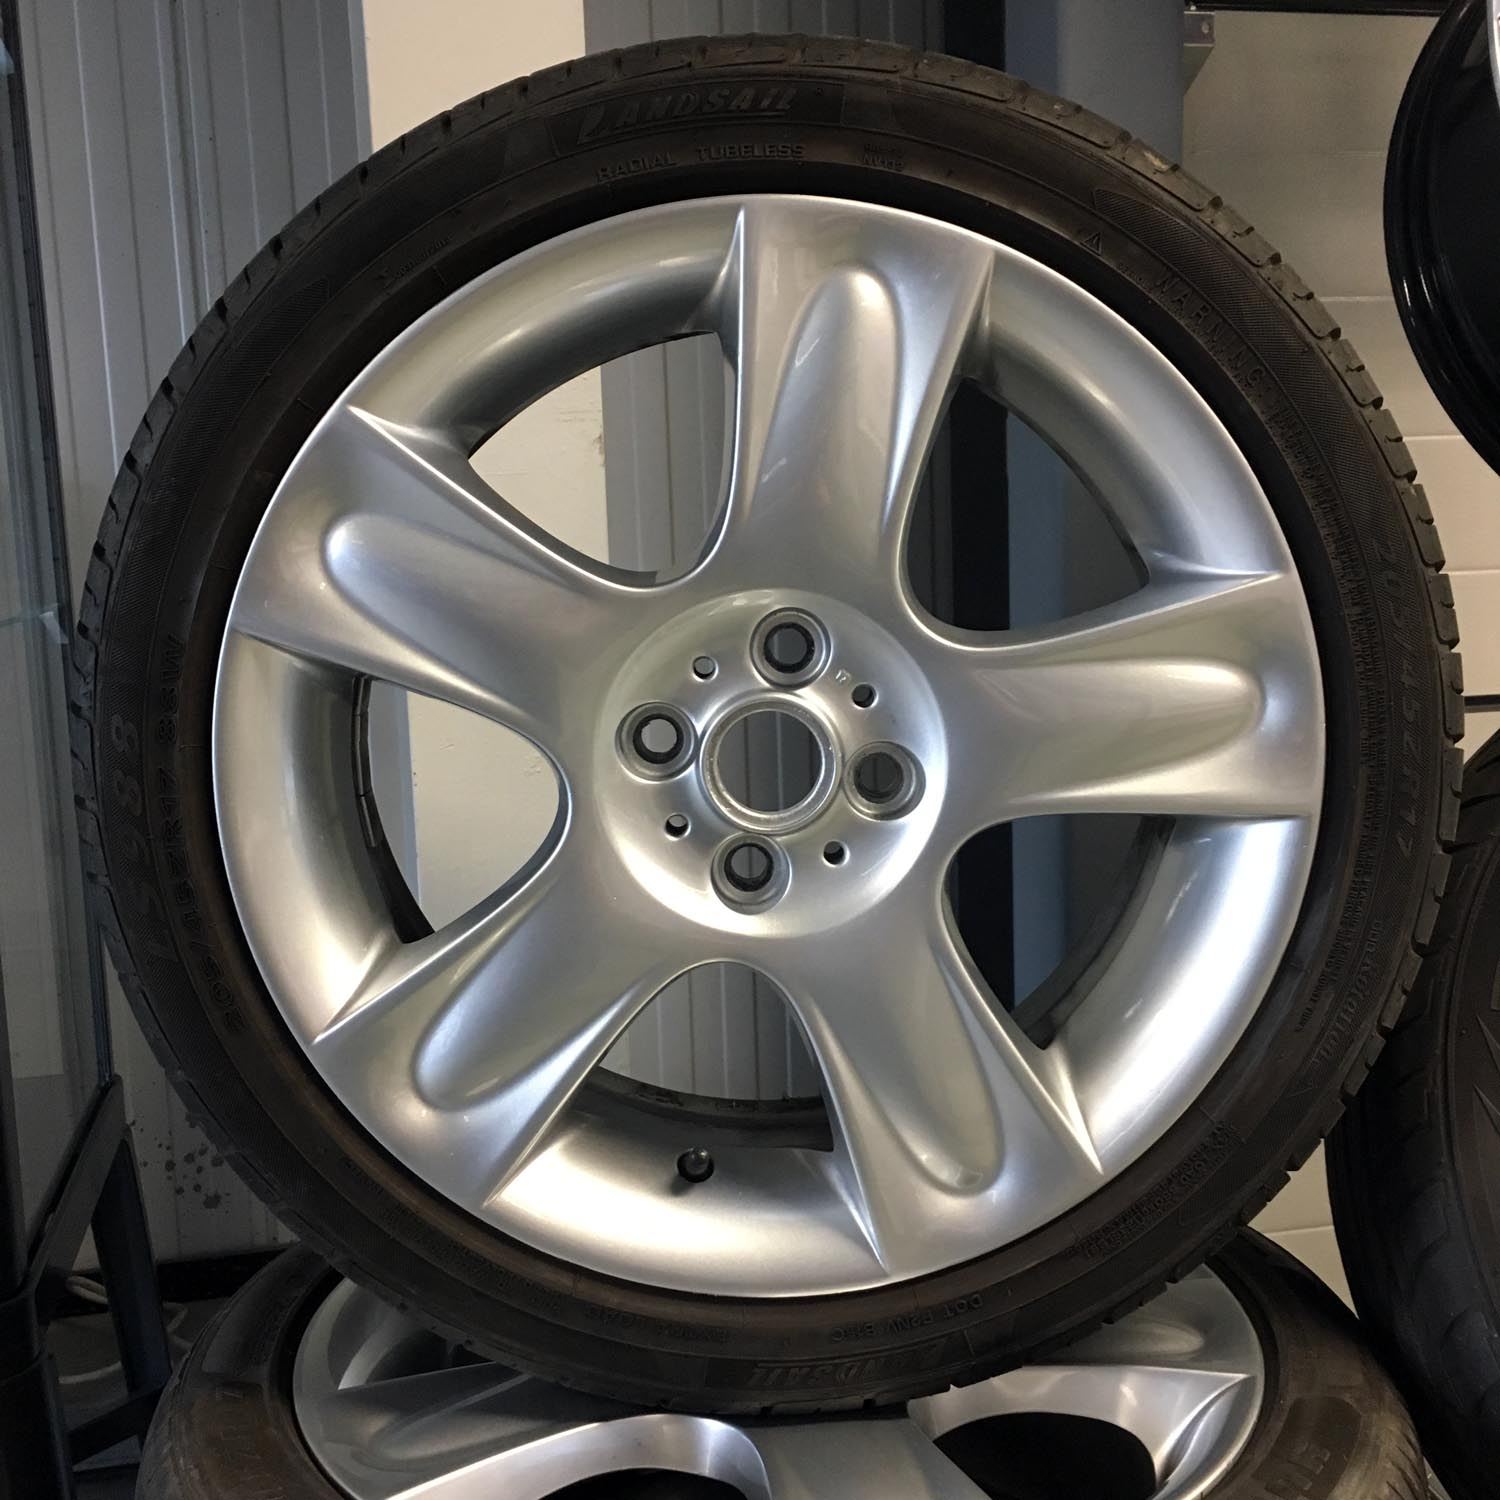 Refurbished Rims